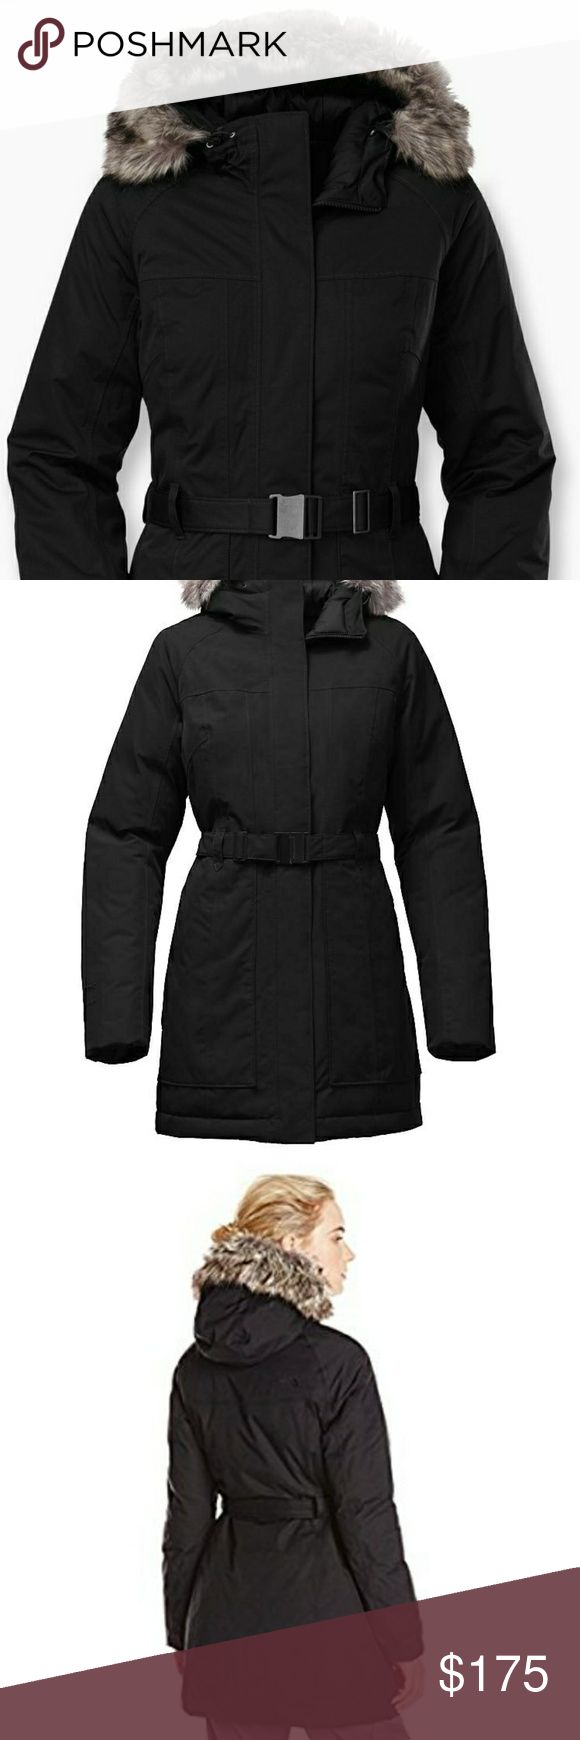 """The North Face Brooklyn Down Coat EUC!! Purchased last season and worn a handful of times. Just had it professionally cleaned and there is a tiny .5"""" tear on upper sleeve that was patched with a black nautical star (appropriate 😄) Please see updated pictures and ask all questions!   Waterproof, breathable, seam-sealed DryVent 2L shellWindproof fabricAttached, adjustable hood with removable, faux-fur ruffMagnetic-closure belt waist adjustmentCovered, secure-zip hand pocketsRaglan sleeves for…"""